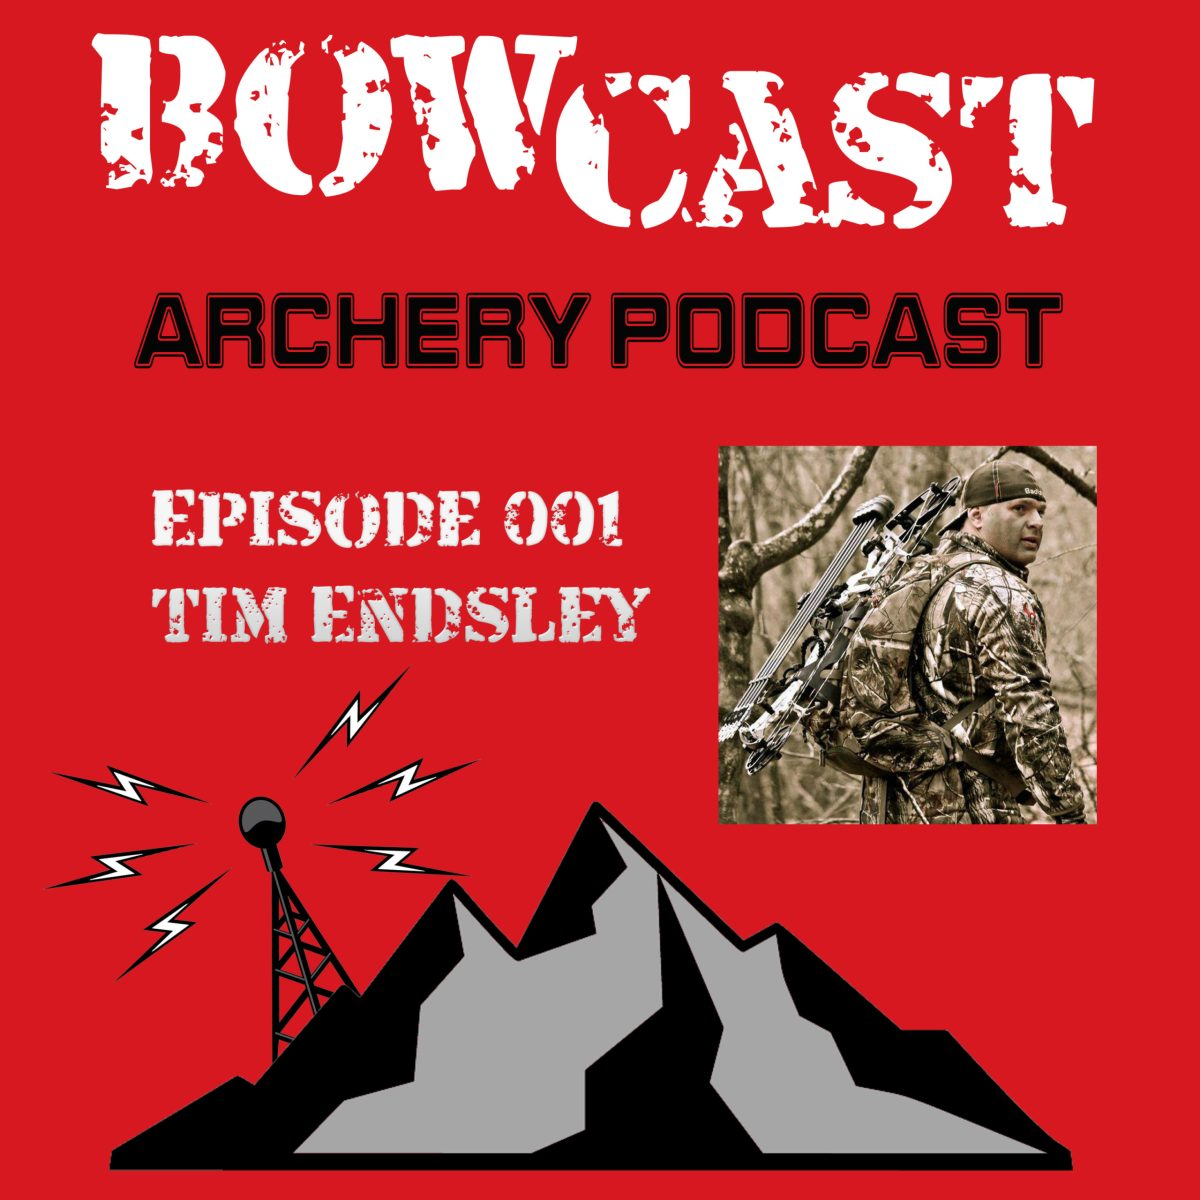 The Story of the Bowcast Archery Podcast Relaunch